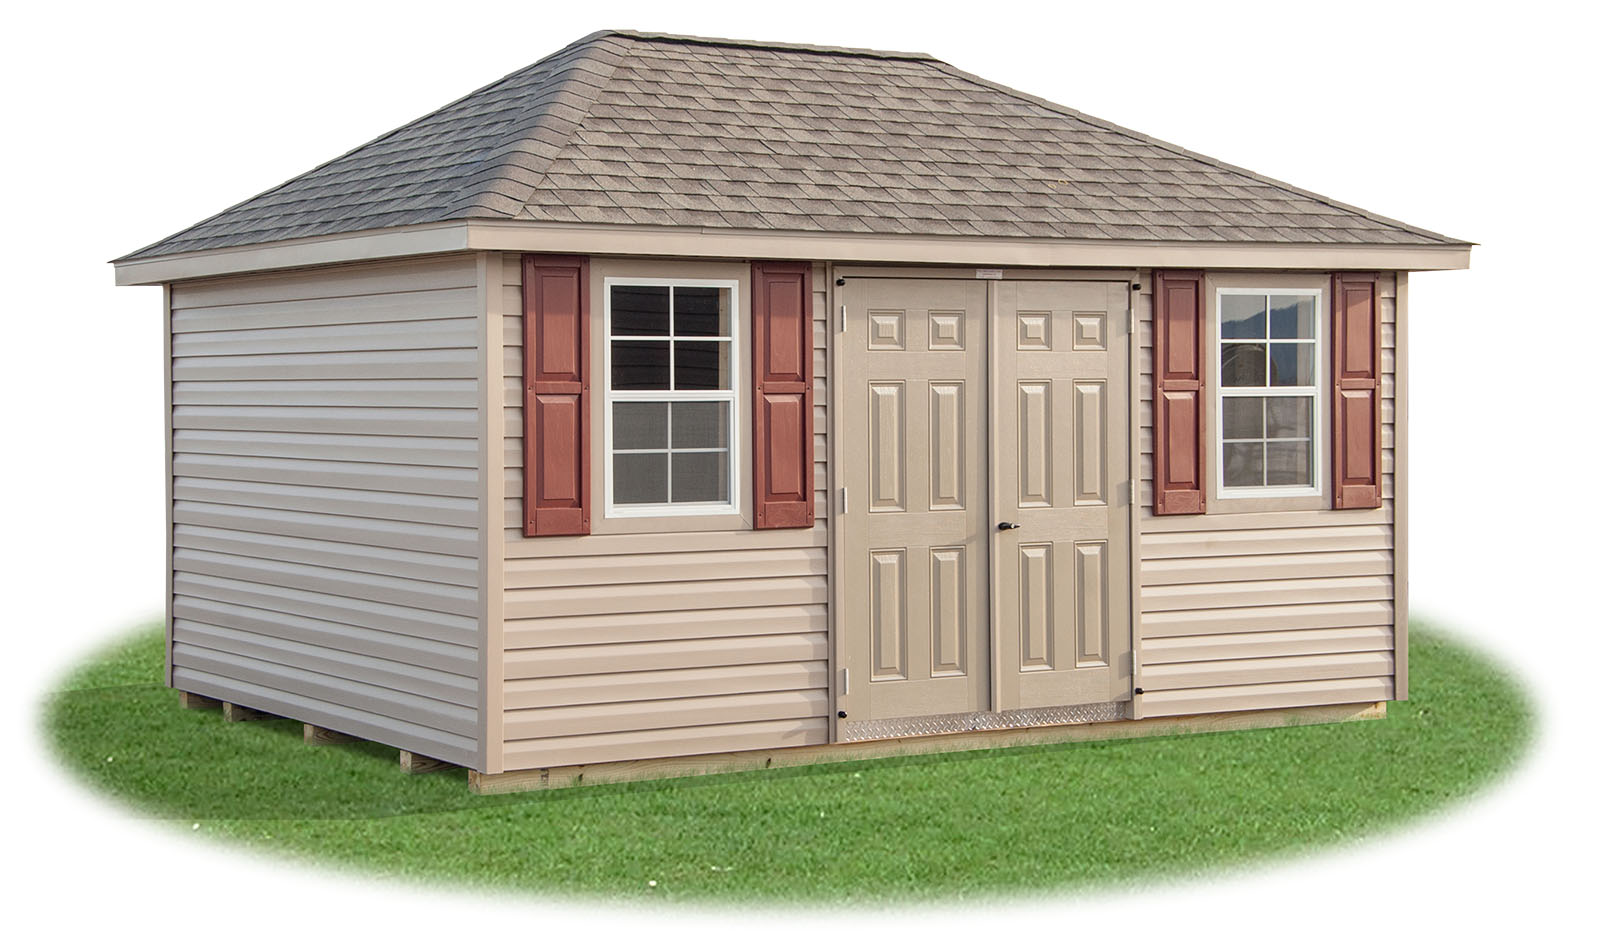 10x16 Vinyl Sided Hip Style Storage Shed From Pine Creek Structures